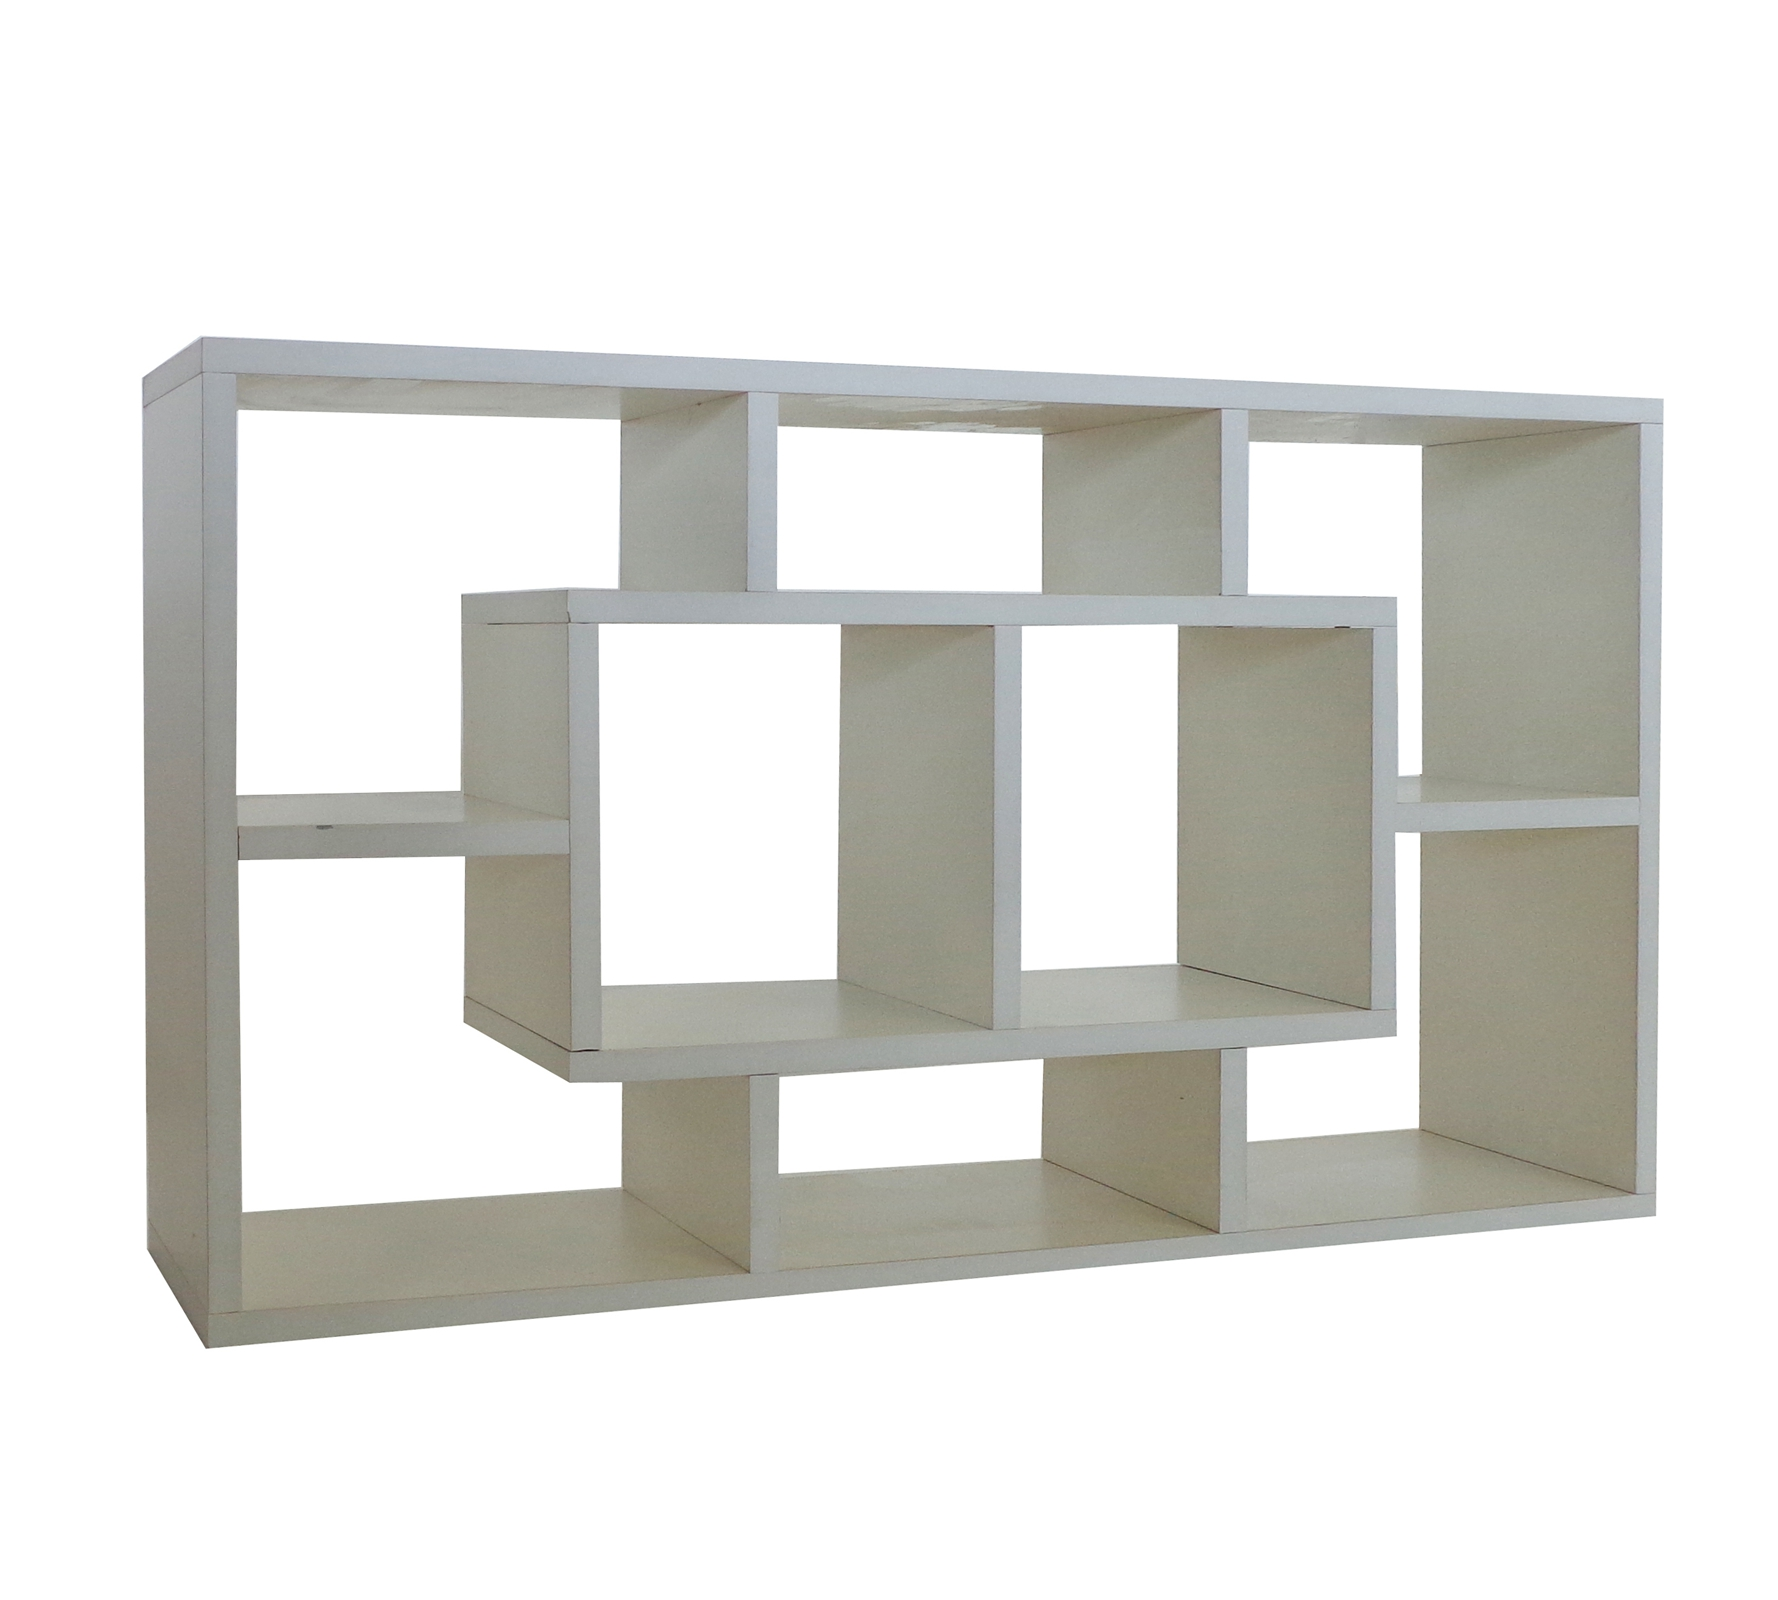 Superb img of FoxHunter White Wood Decor Shelf Display Storage Unit Shelving Shelves  with #736A51 color and 1778x1600 pixels